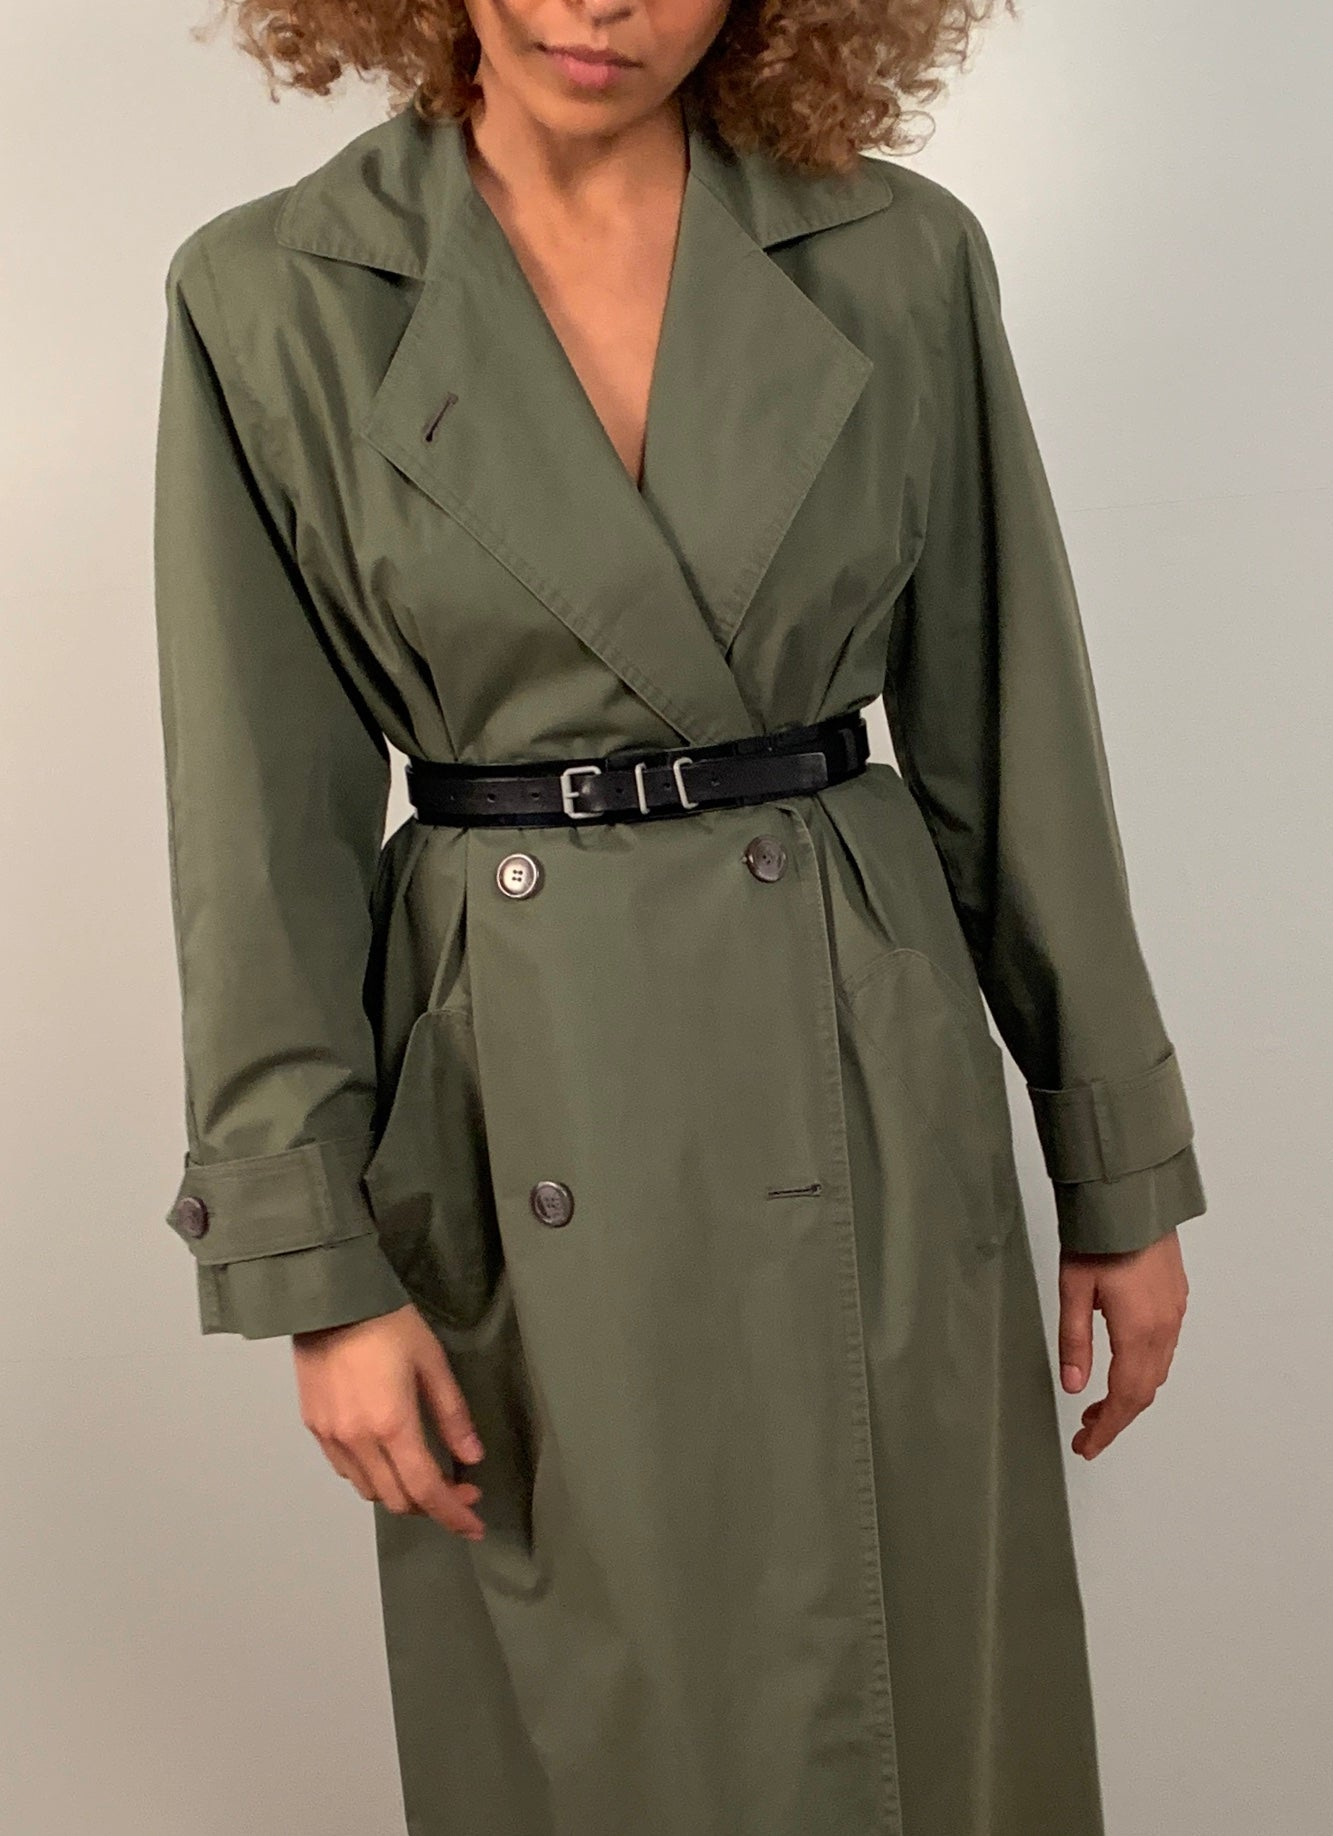 Christian Dior 1990's Mac / trench coat in Khaki